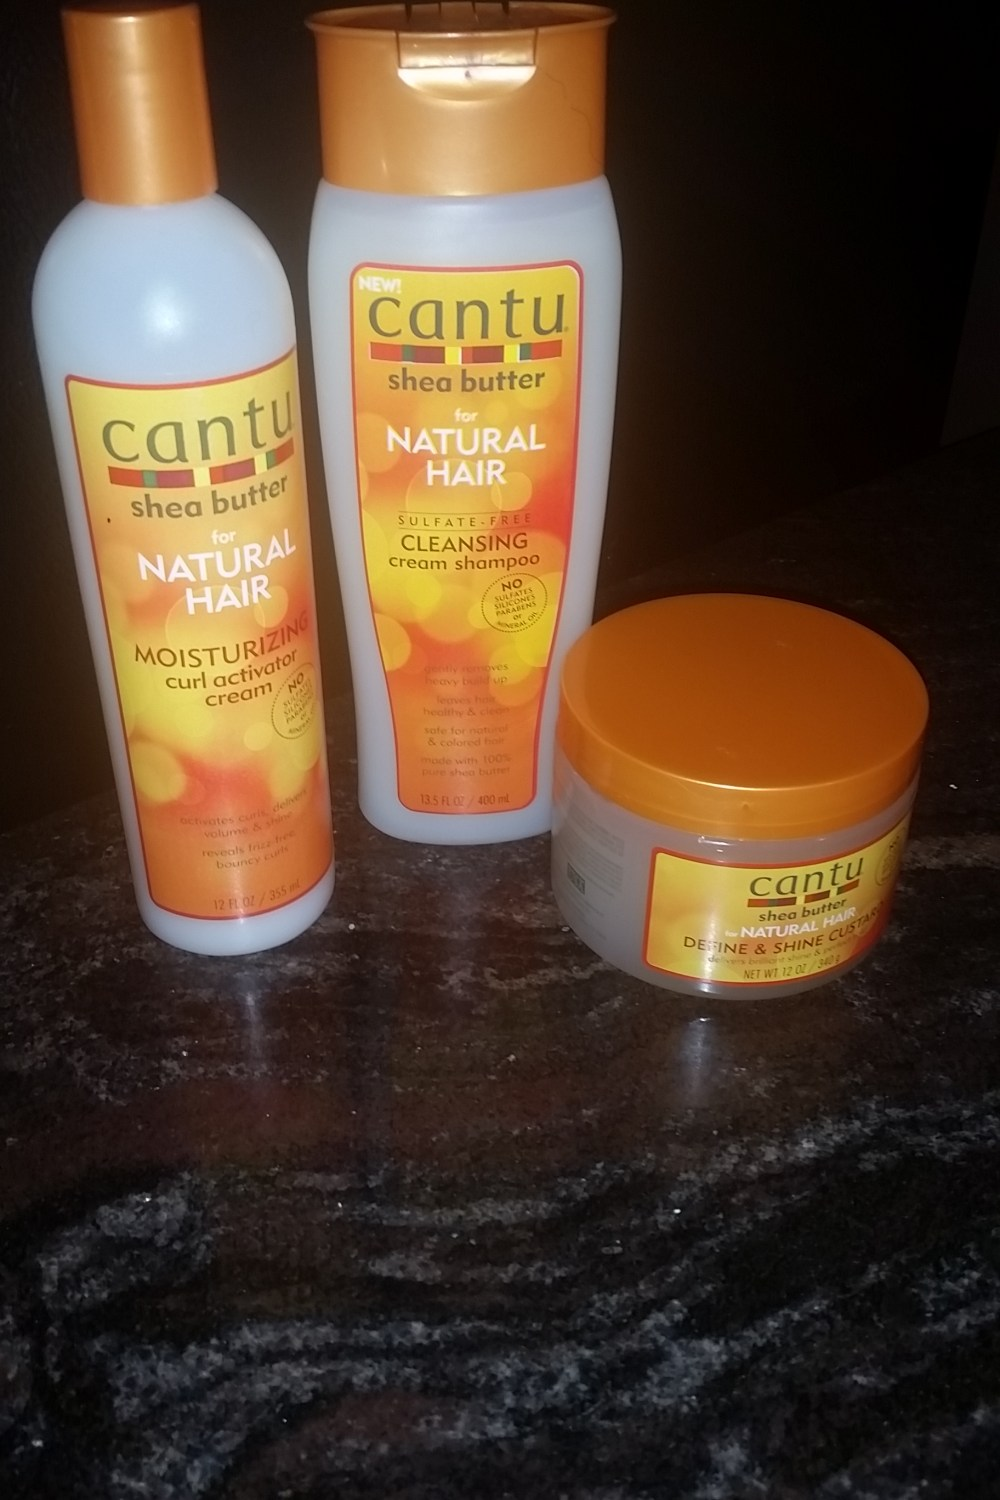 Cantu Shea Butter Product Review